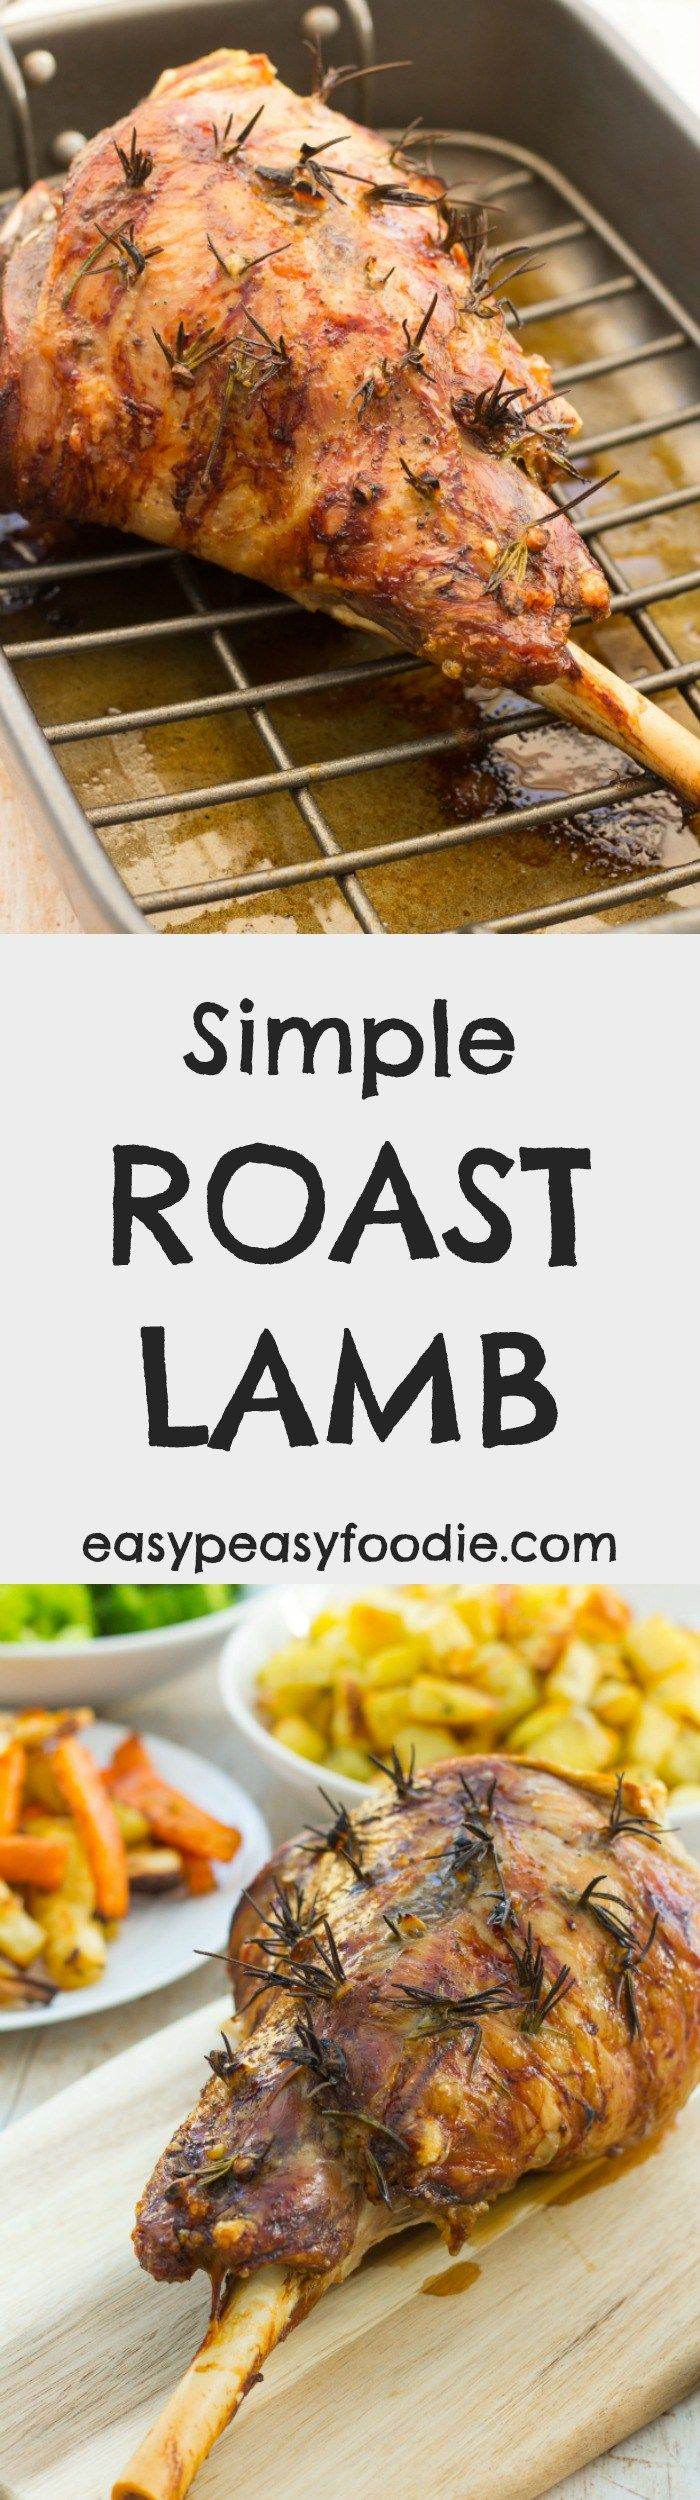 A roast dinner classic! This Simple Roast Lamb and Gravy is quick to prepare and quick to cook, but using plenty of rosemary and garlic ensures it's packed full of flavour! Perfect for your Sunday lunch or Easter celebrations this year. #lamb #roastlamb #legoflamb #roastdinner #britishfood #sundayroast #rosemary #garlic #easter #easterlamb